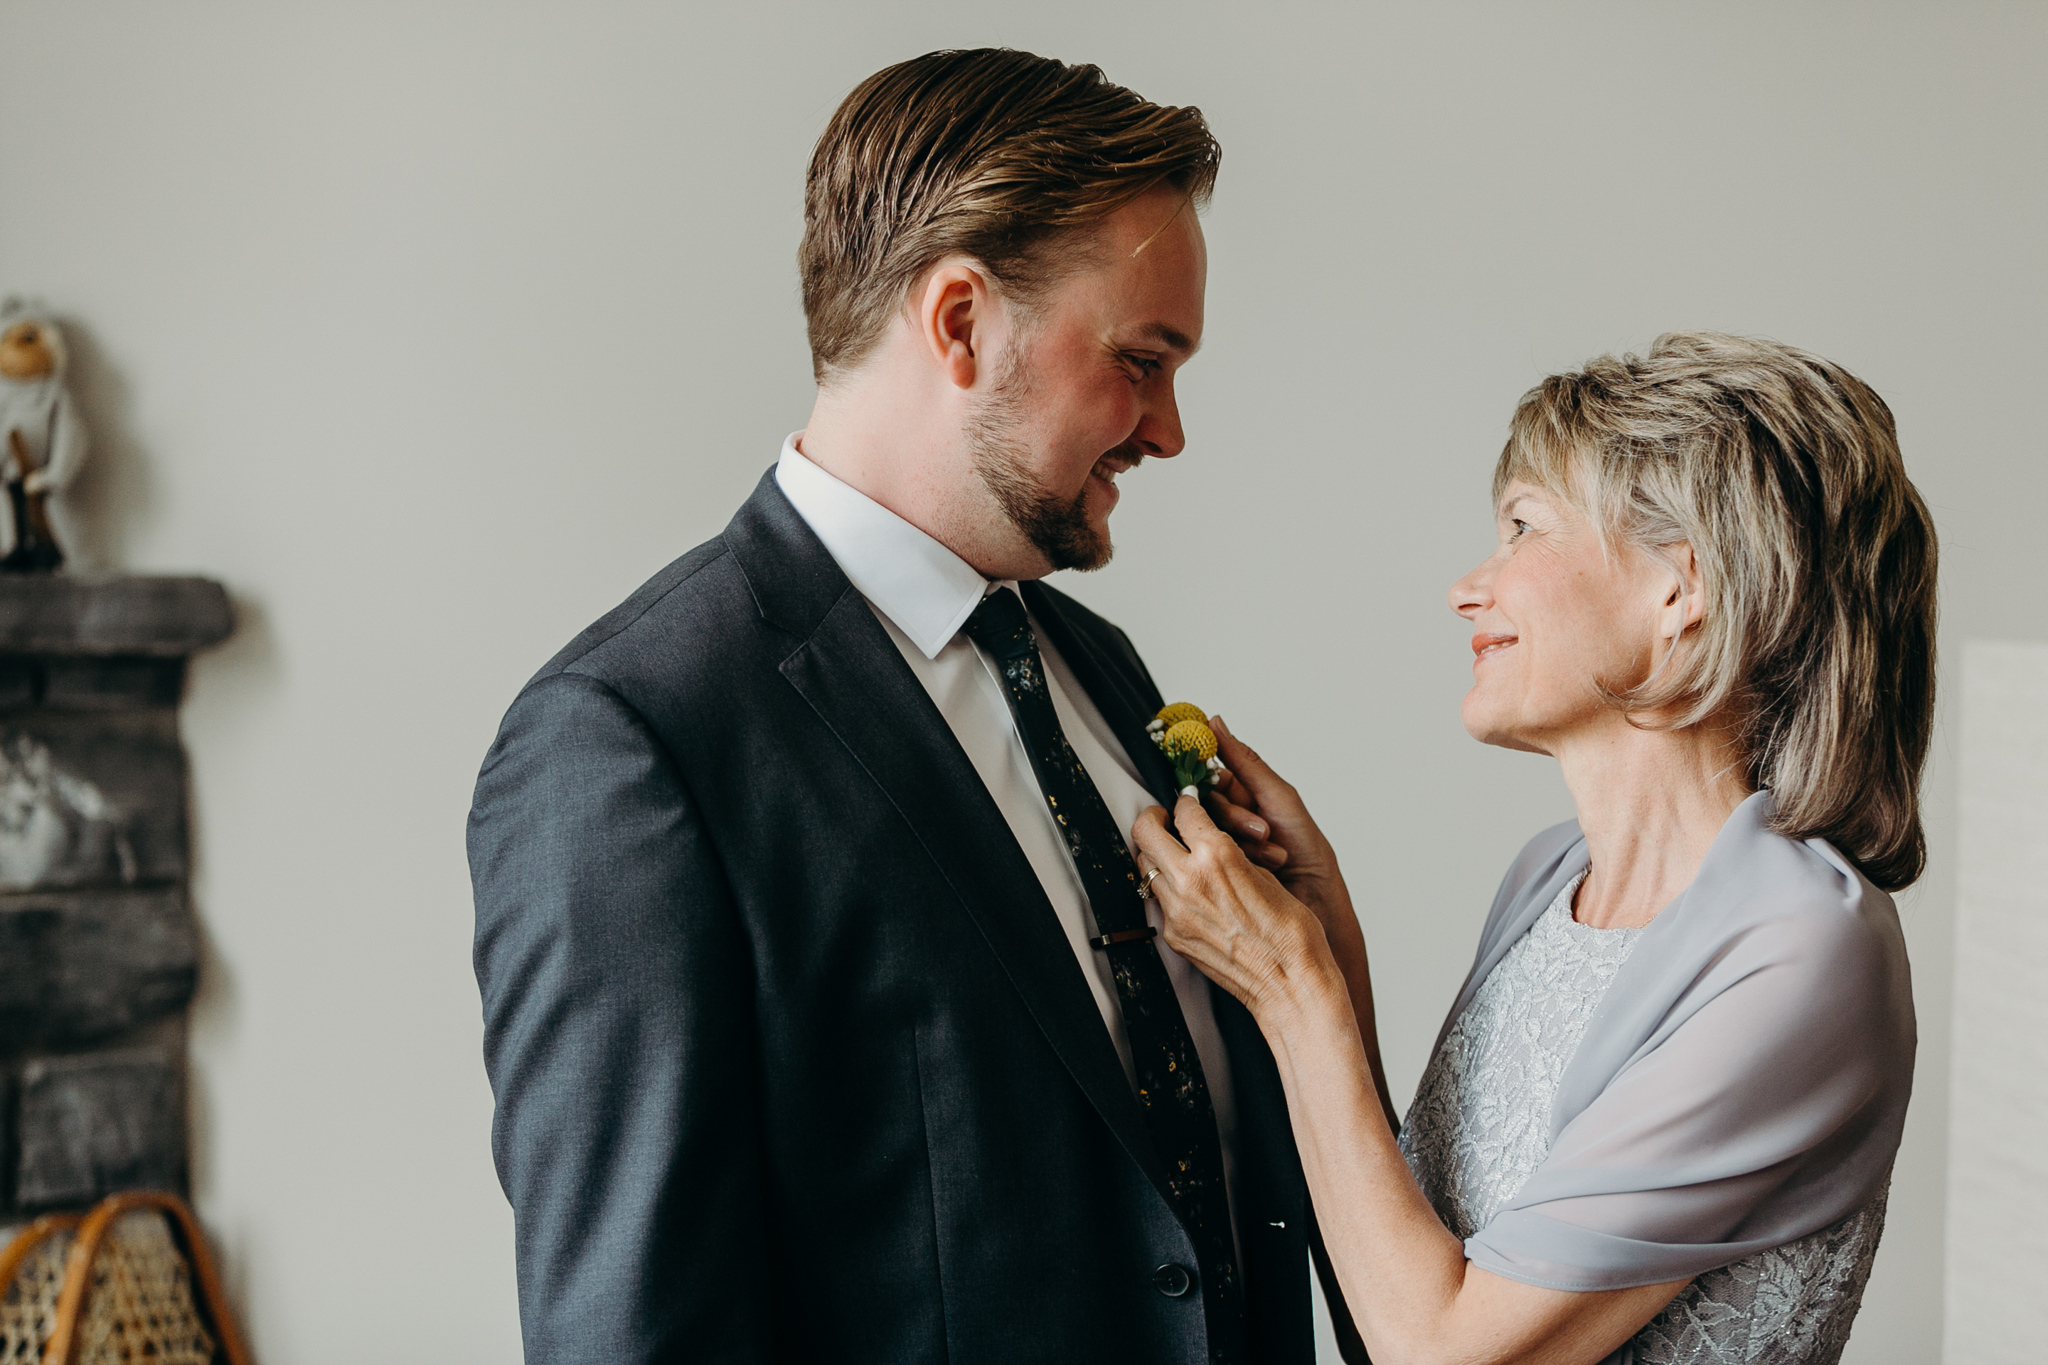 Sentimental portrait of mother looking at her son, the groom, on his wedding day